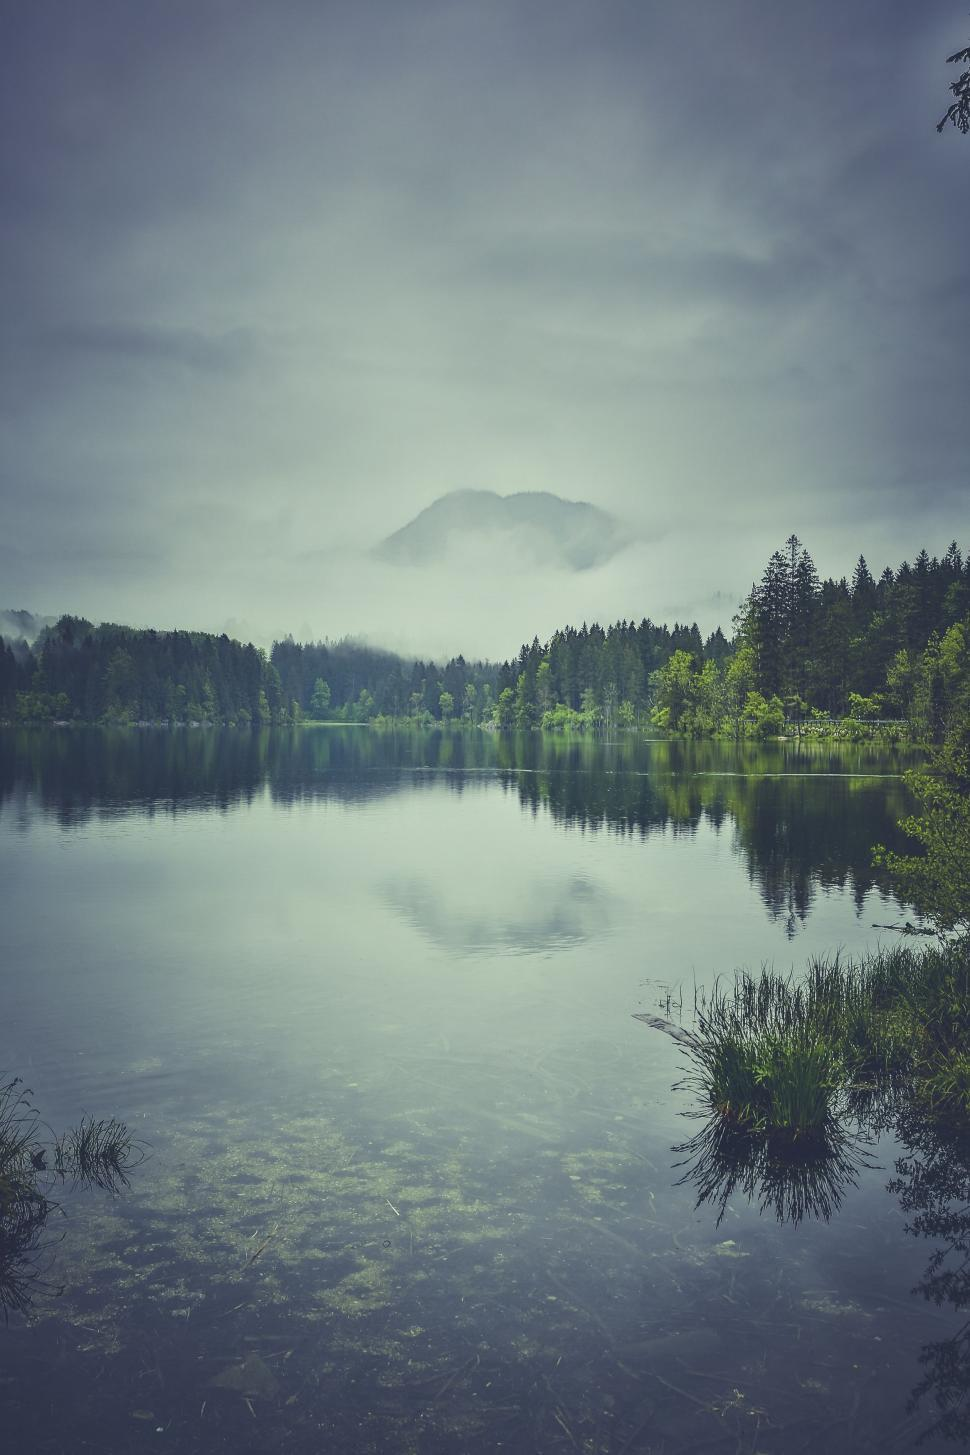 Download Free Stock HD Photo of Lake with Reflection of Trees  Online